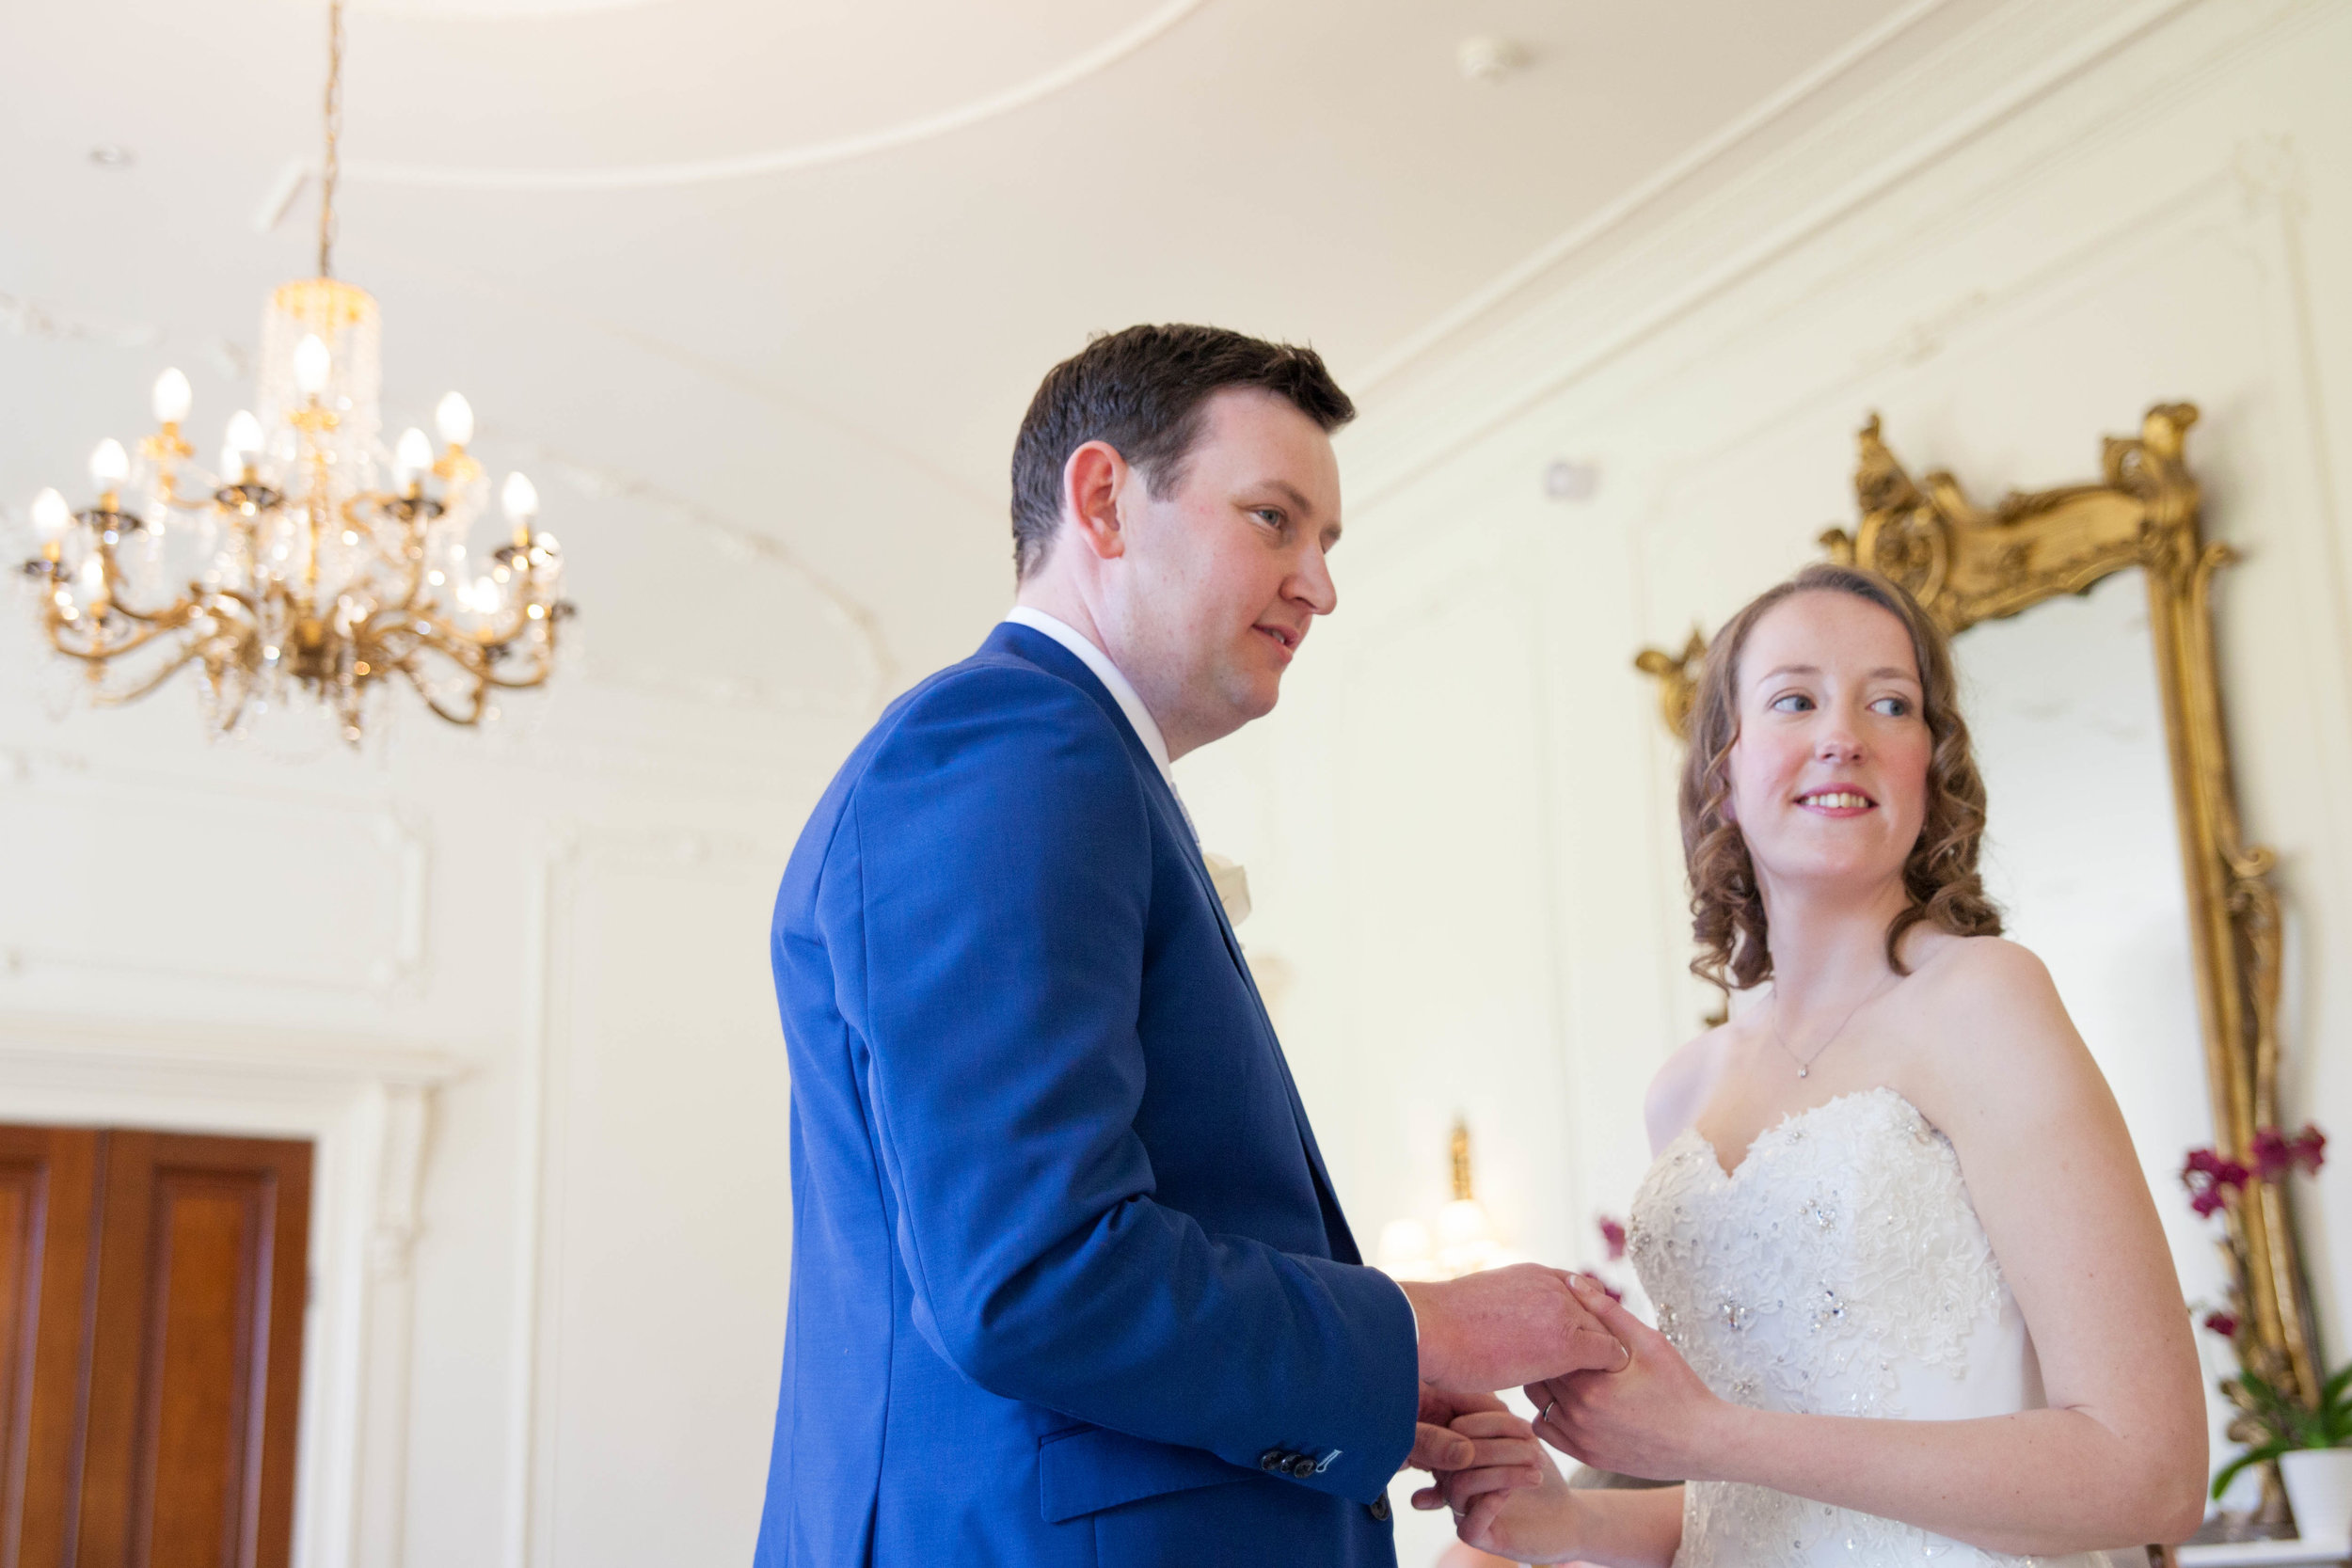 NLPhotography_Taplow_House-Wedding_Photographer_Emily&Alan_C-282.jpg